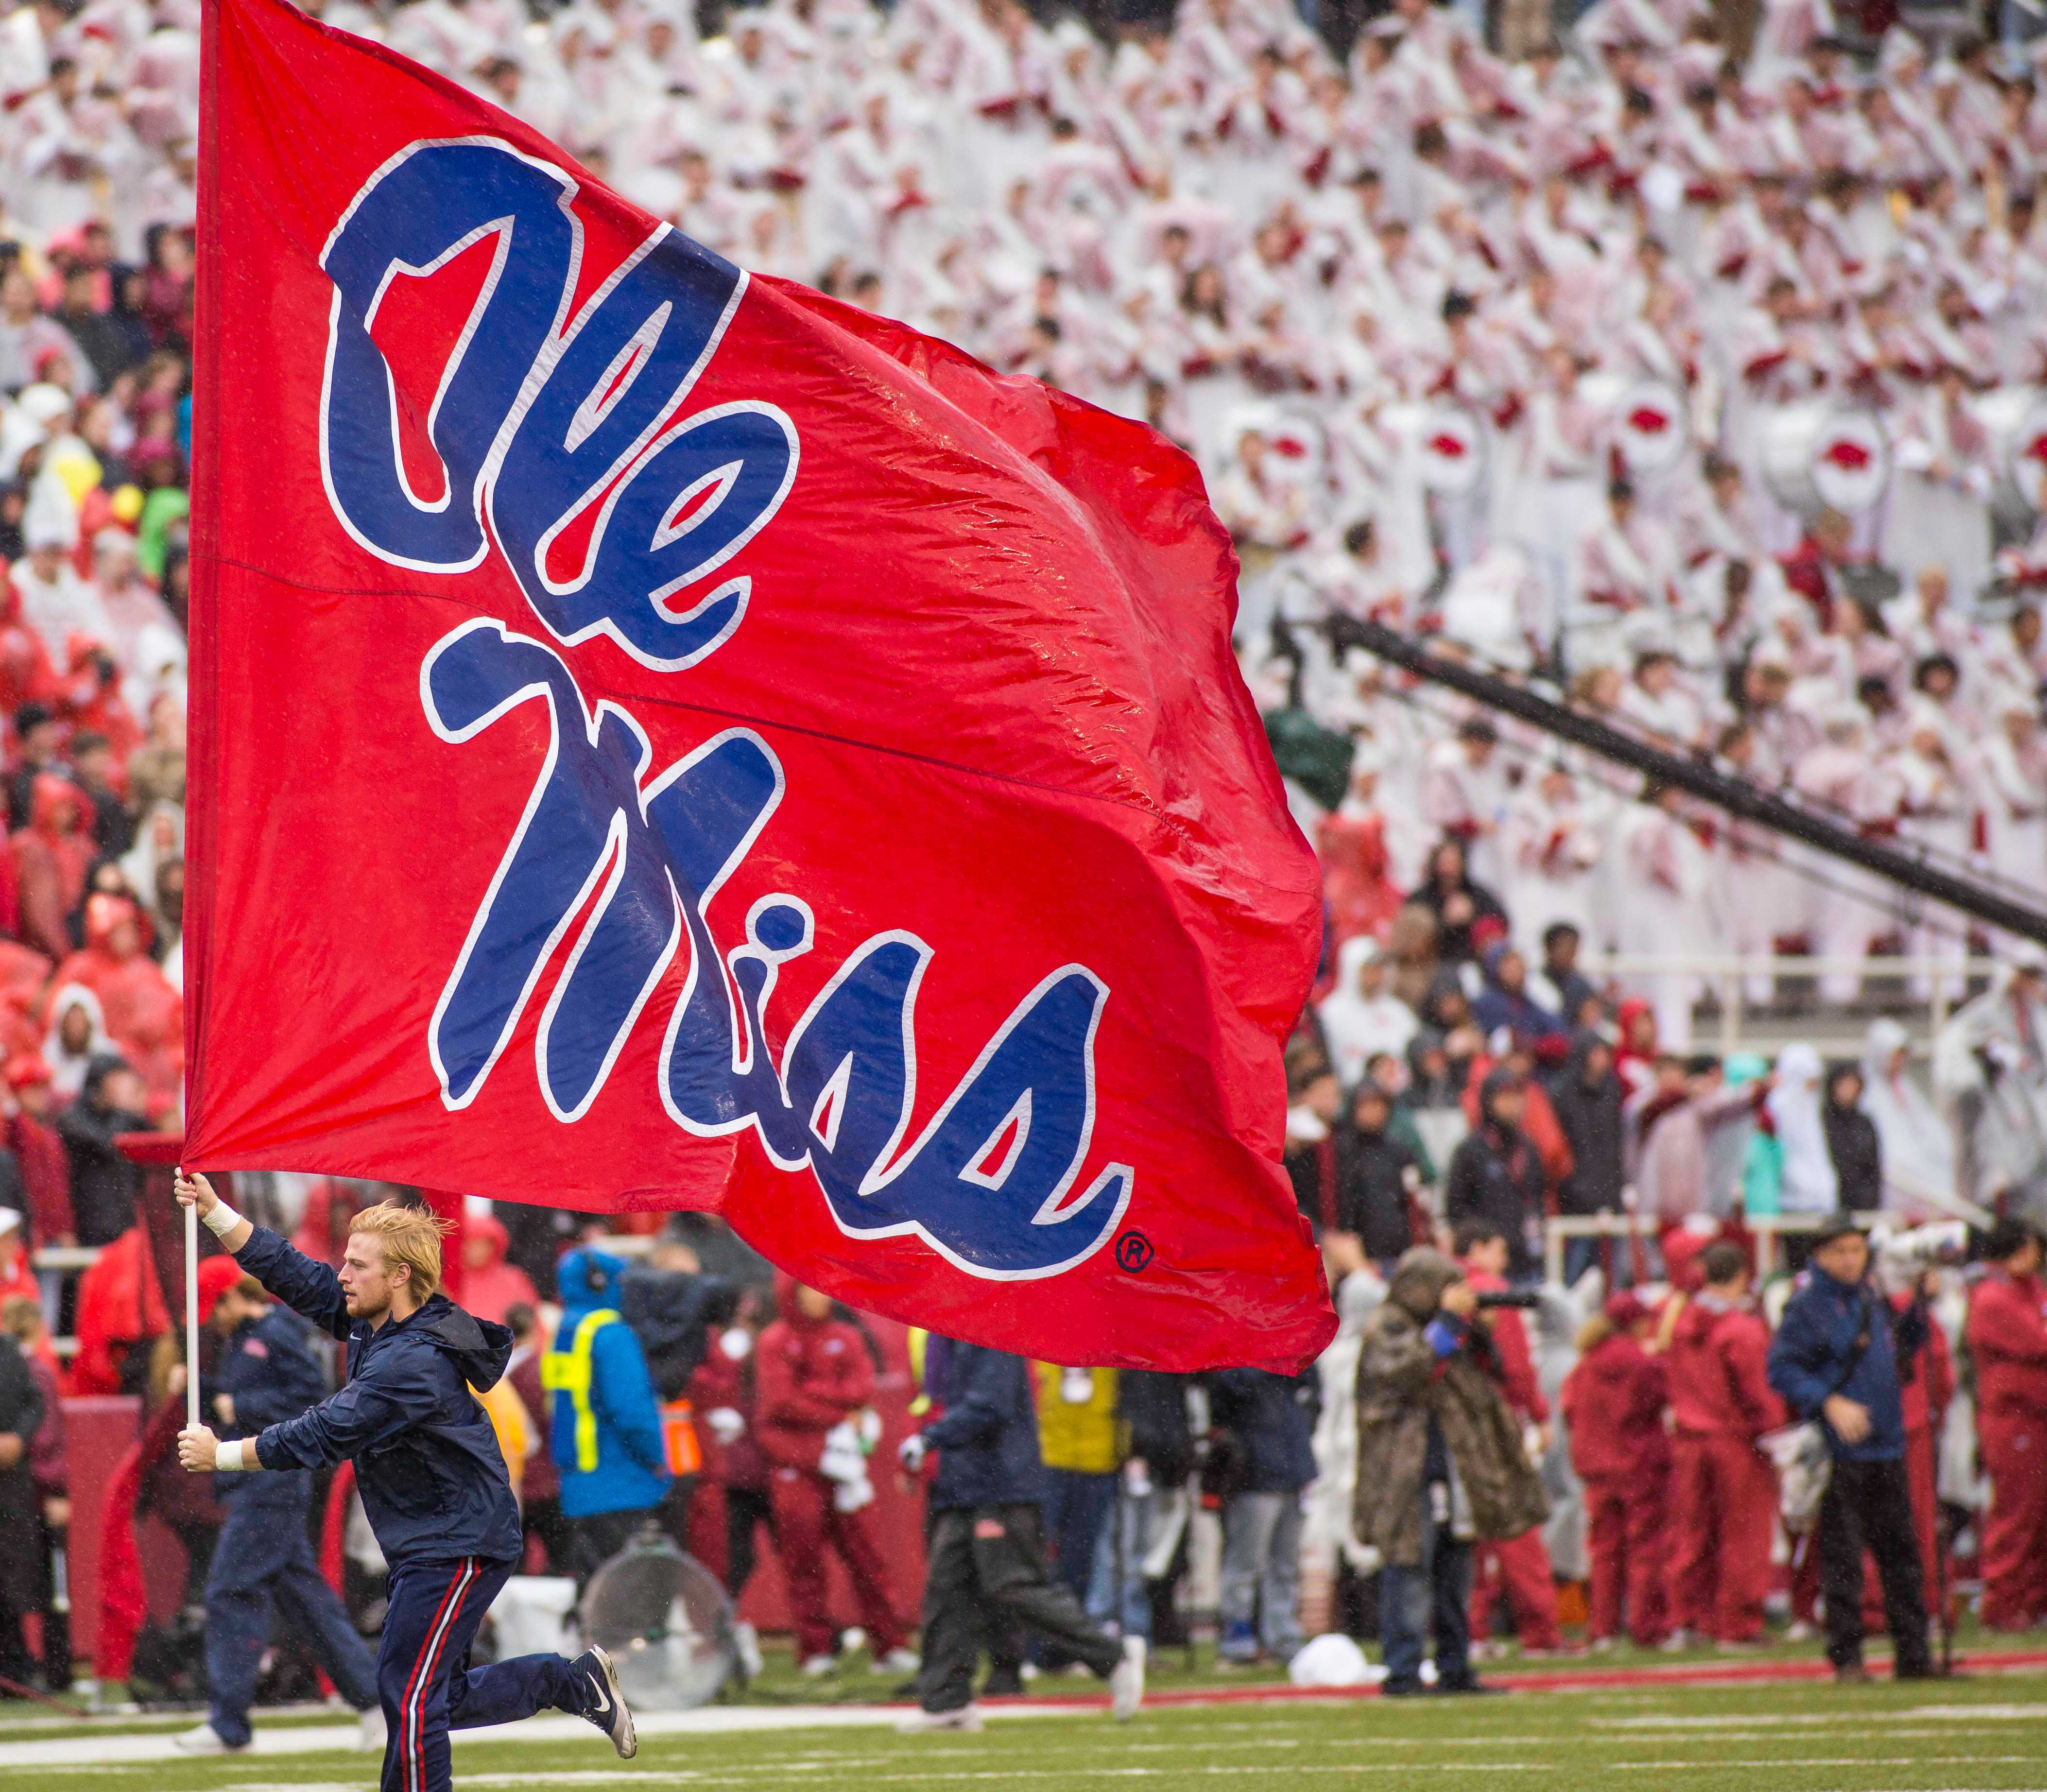 20 interesting facts from Ole Miss football history